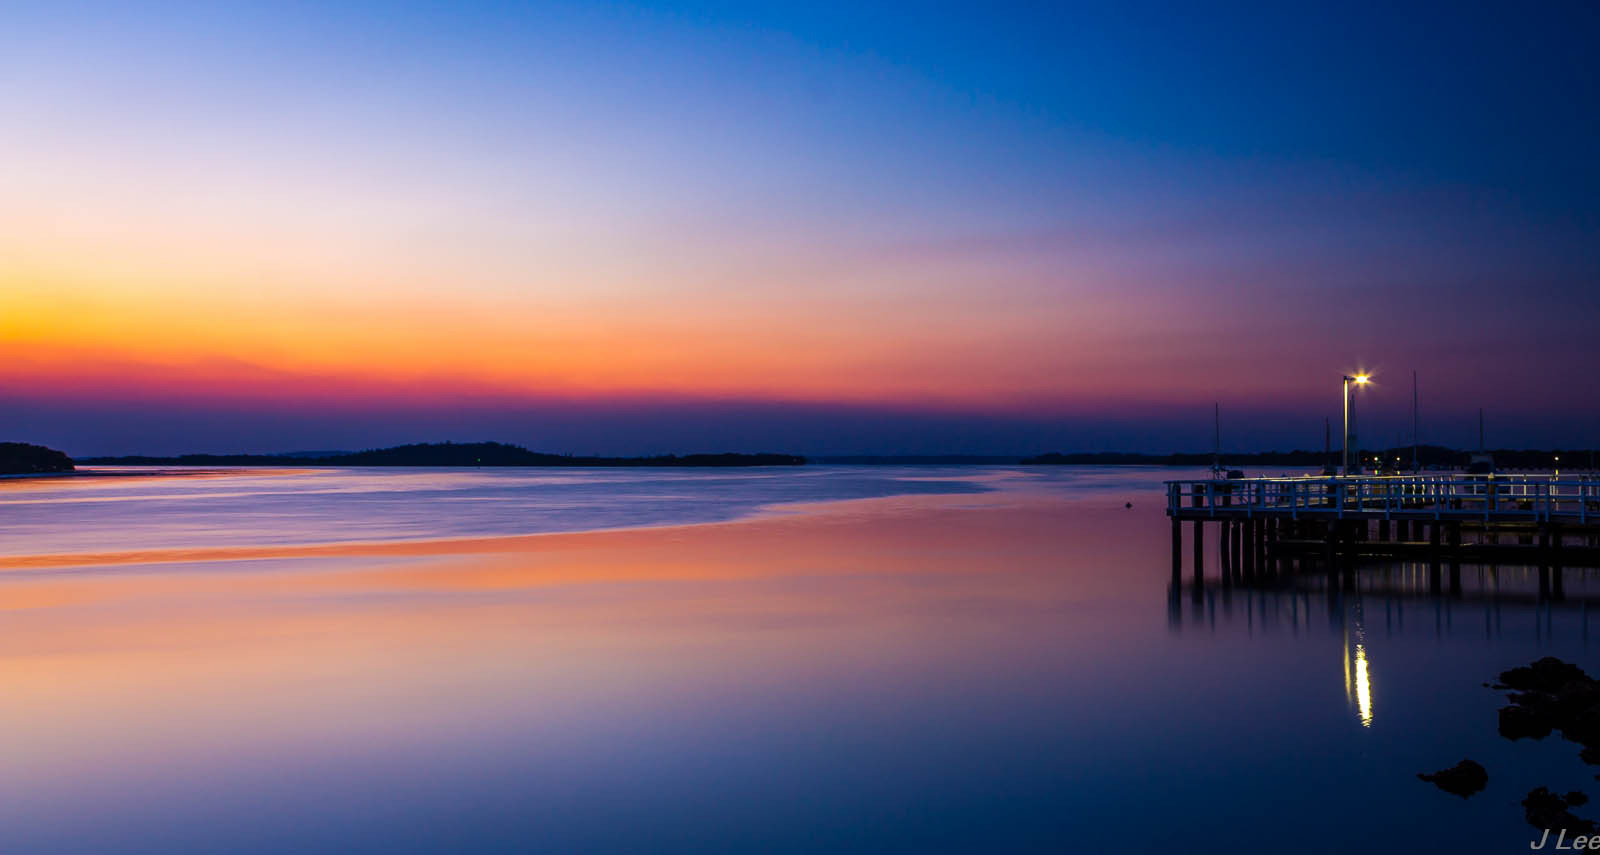 Photograph Dawn Swan bay by James Lee on 500px